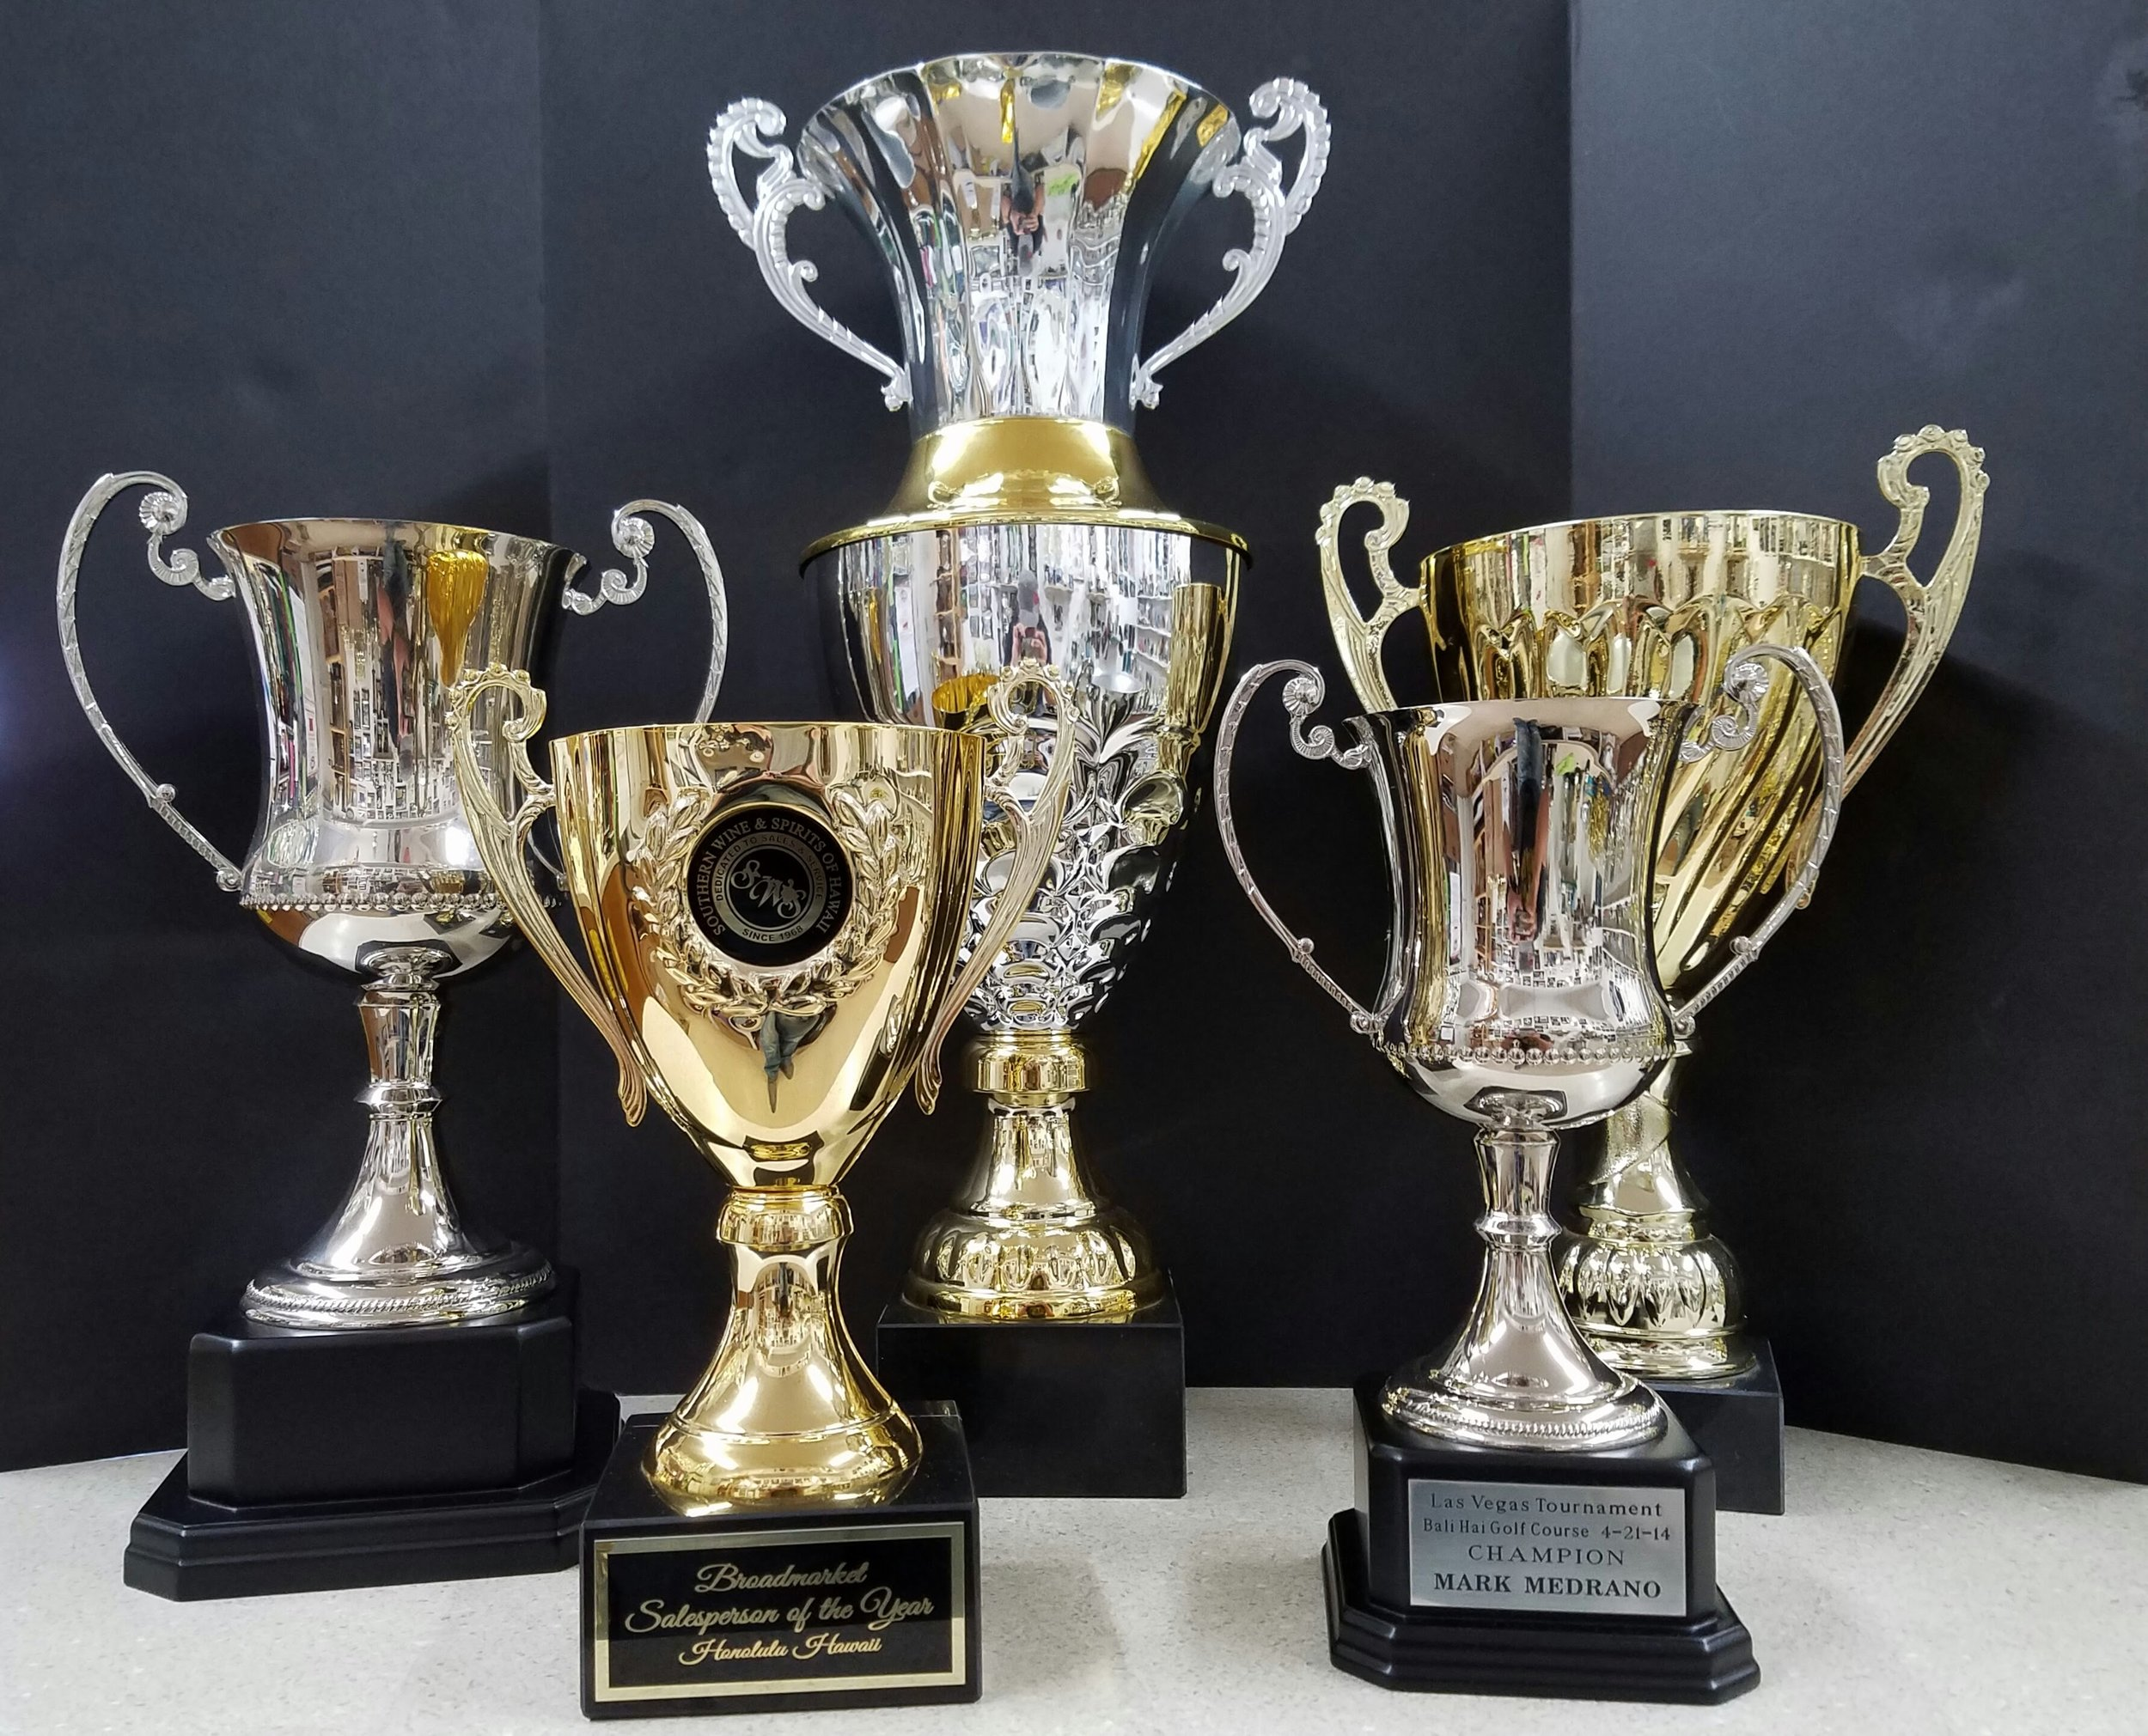 """SILVER CUP 1  (16"""") - Sold Out,  GOLD CUP 1  (13"""") - 149.00,  BIG CUP  (24"""") - 270.00,  SILVER CUP 2  (13"""") - 139.00,  GOLD CUP 2  (17"""") - 122.00"""